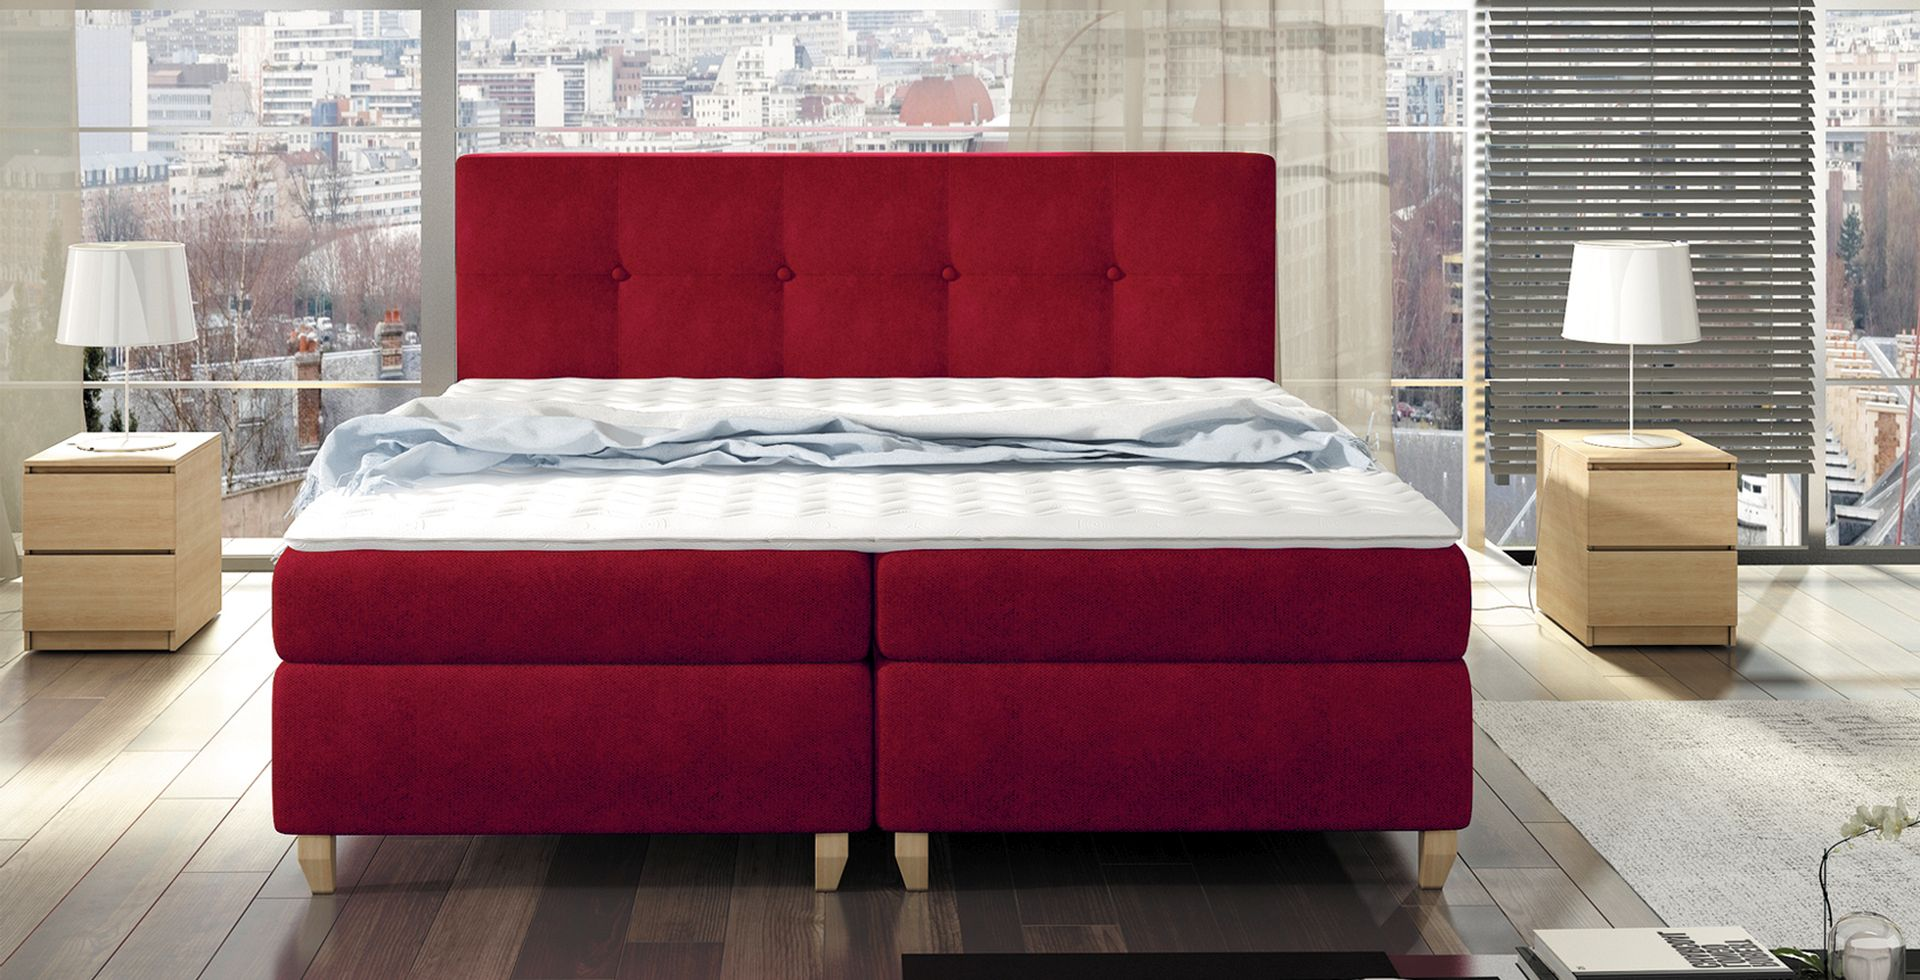 boxspringbett design bett topper federkern doppelbett polsterbett malta la. Black Bedroom Furniture Sets. Home Design Ideas